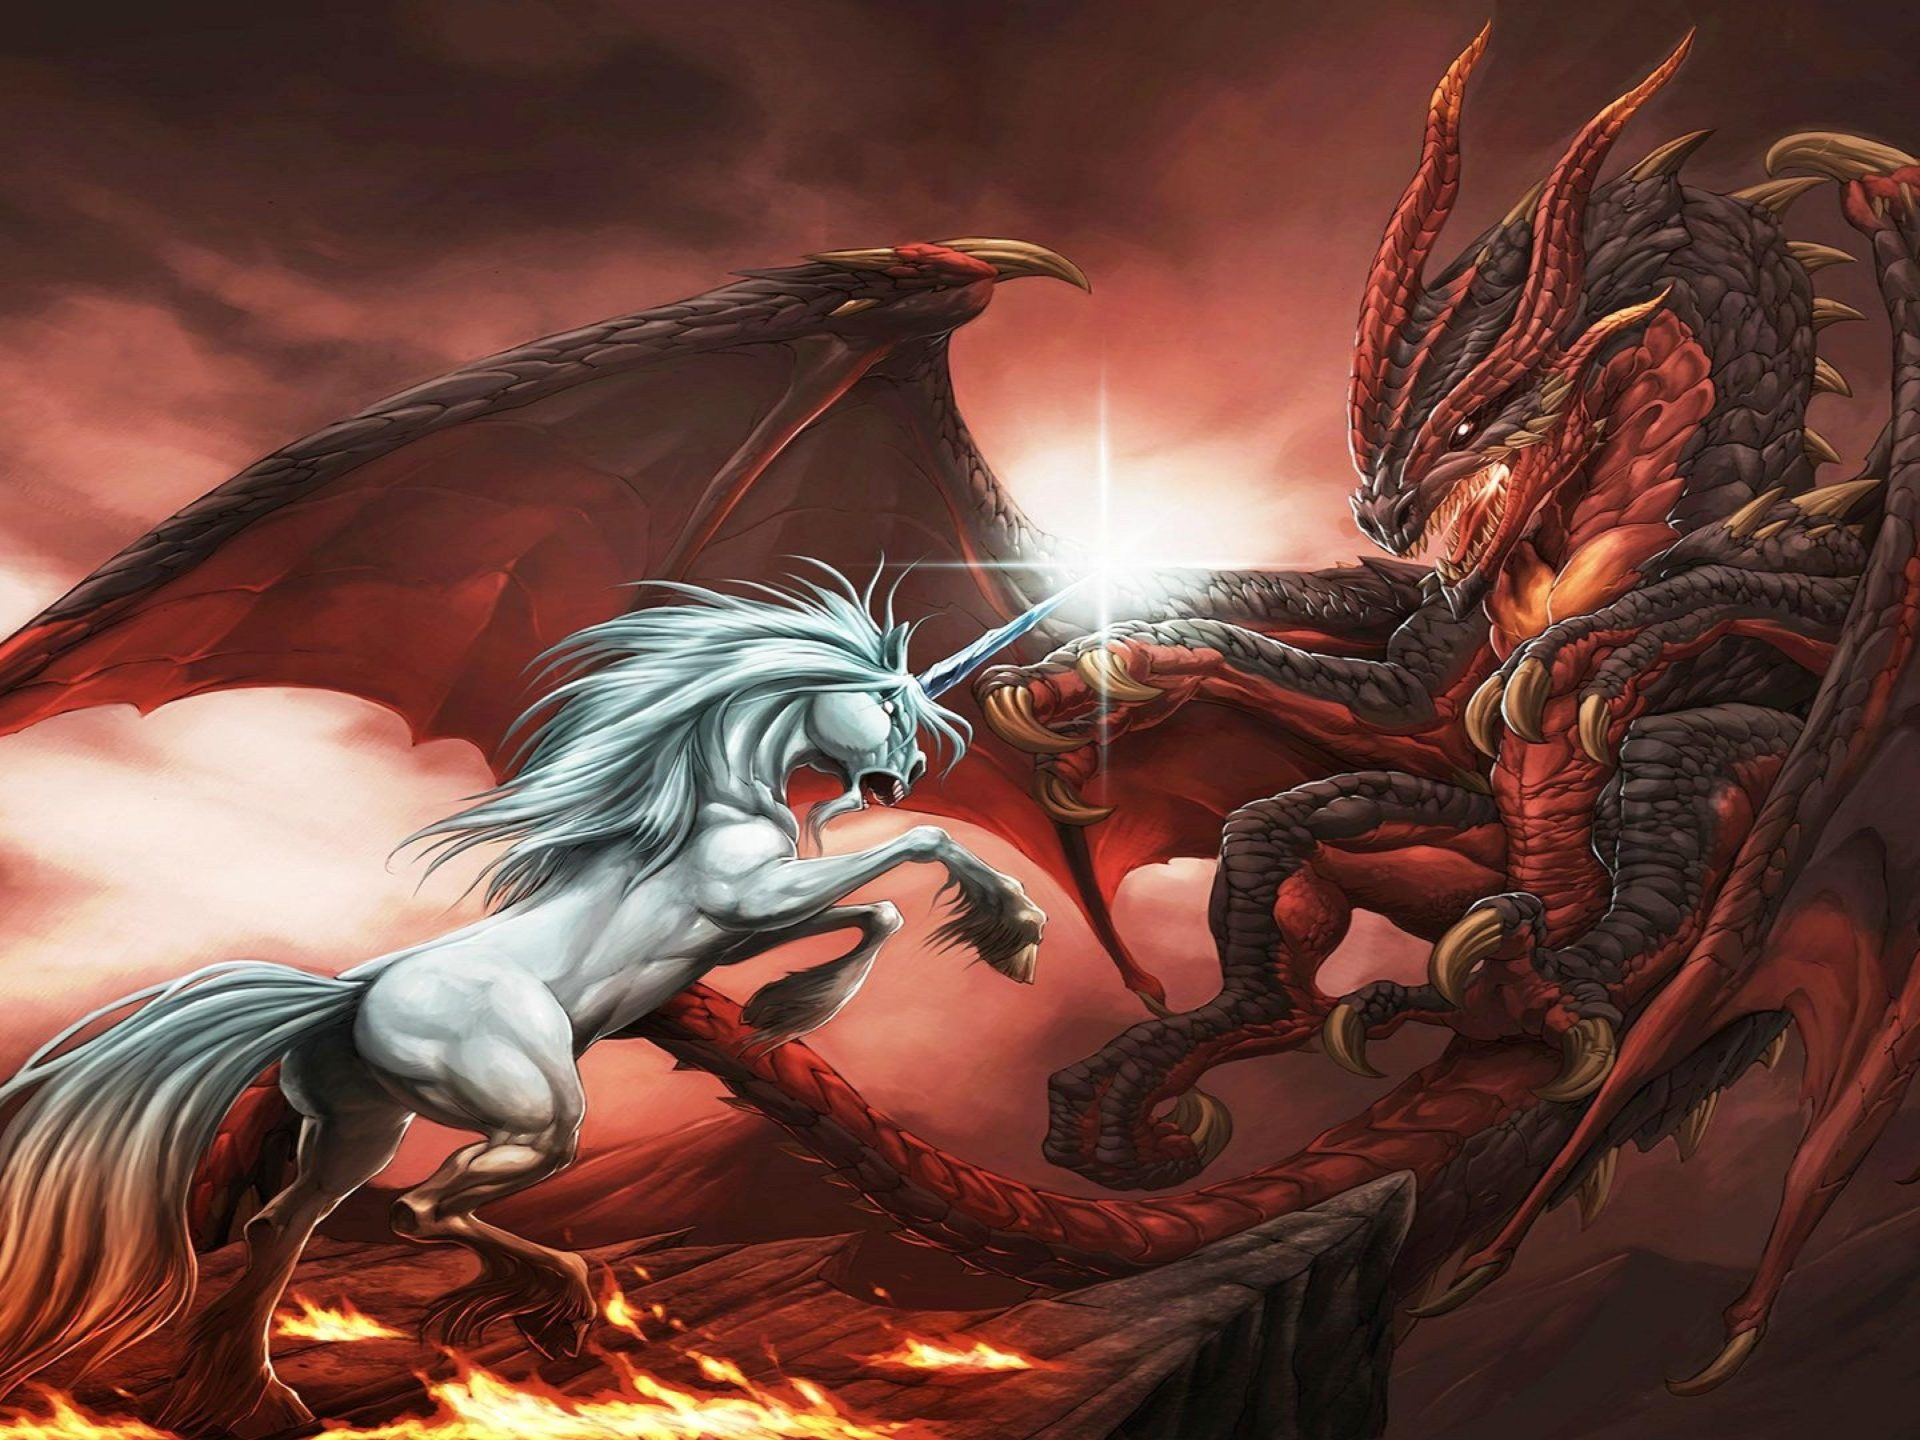 The Every Girl Wallpaper Fantasy Dragon Unicorn War Abstract Ultra 3840x2160 Hd